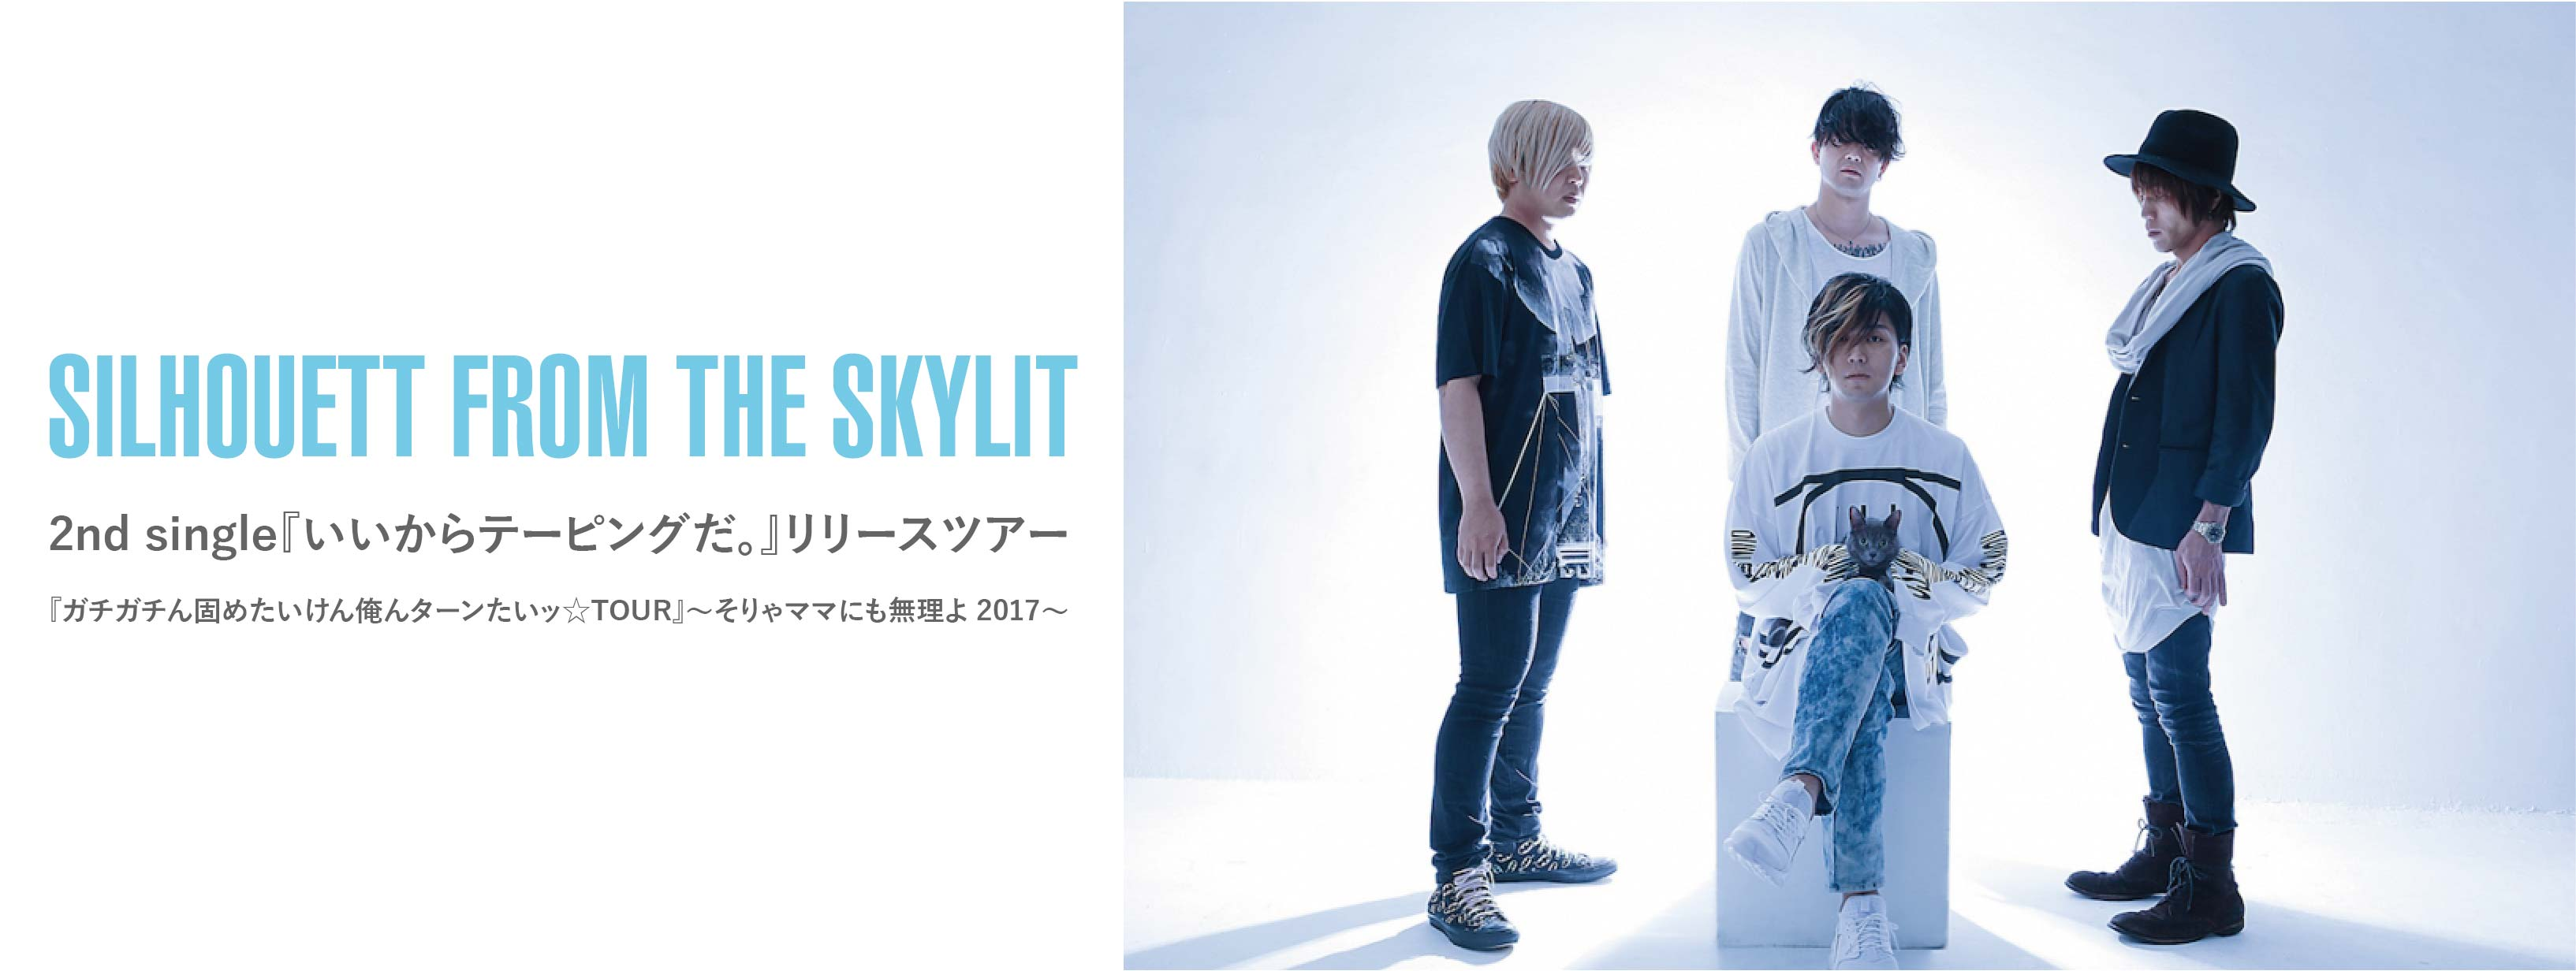 SILHOUETTE FROM THE SKYLIT 2ndシングル「いいからテーピングだ。」リリースツアー